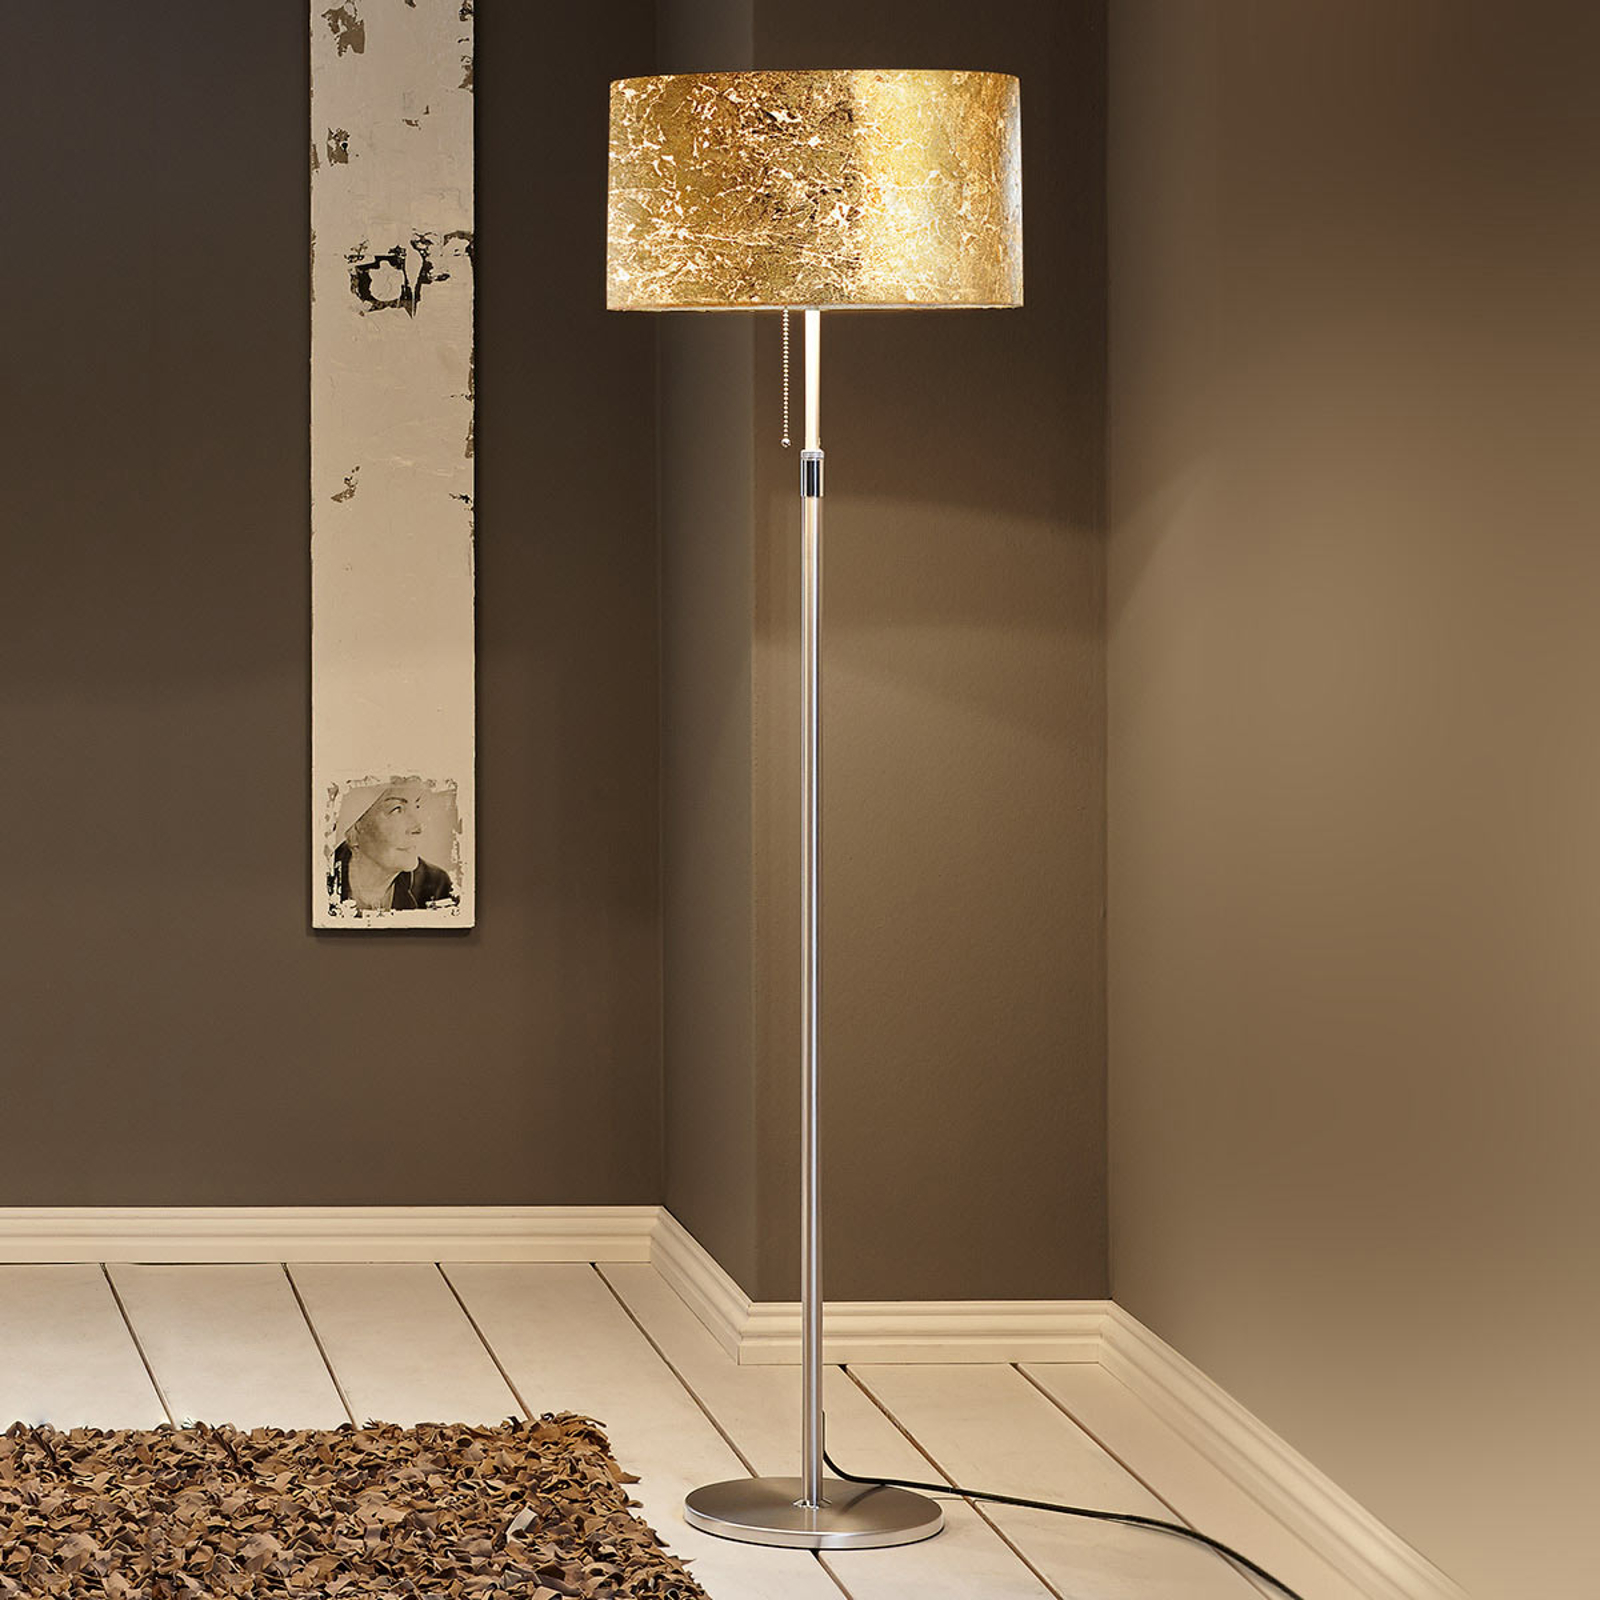 Alea Loop floor lamp with a gold leaf finish_4536188_1